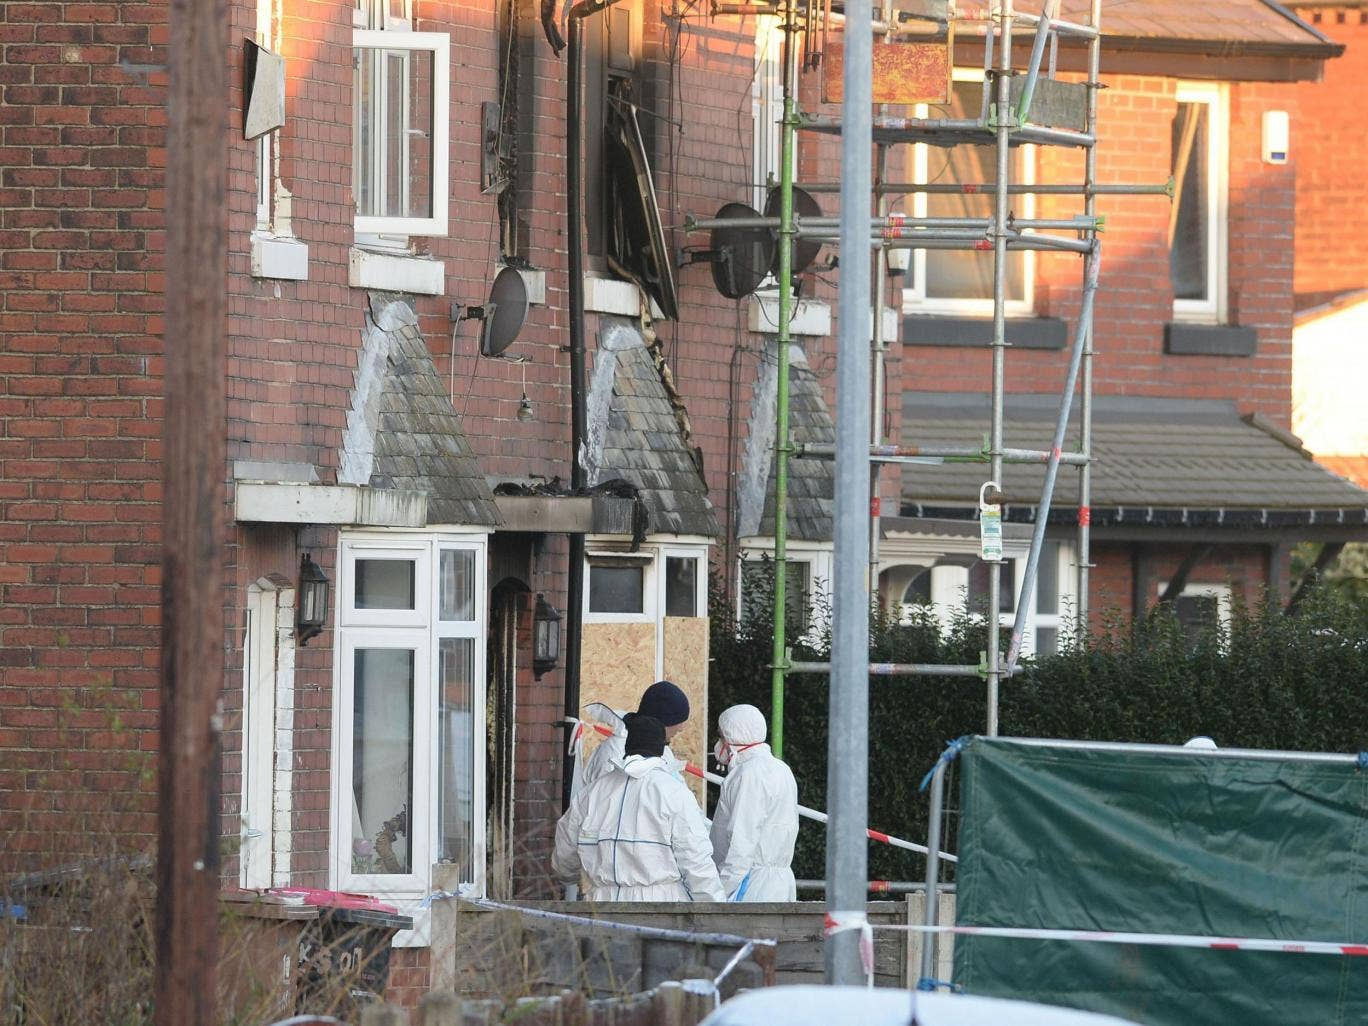 Salford House Fire Family Dreading Telling Critically Ill Mother Wiring A 4th Edition Completely Revised And Updated Three Year Old Becomes Fourth Victim Of Targeted